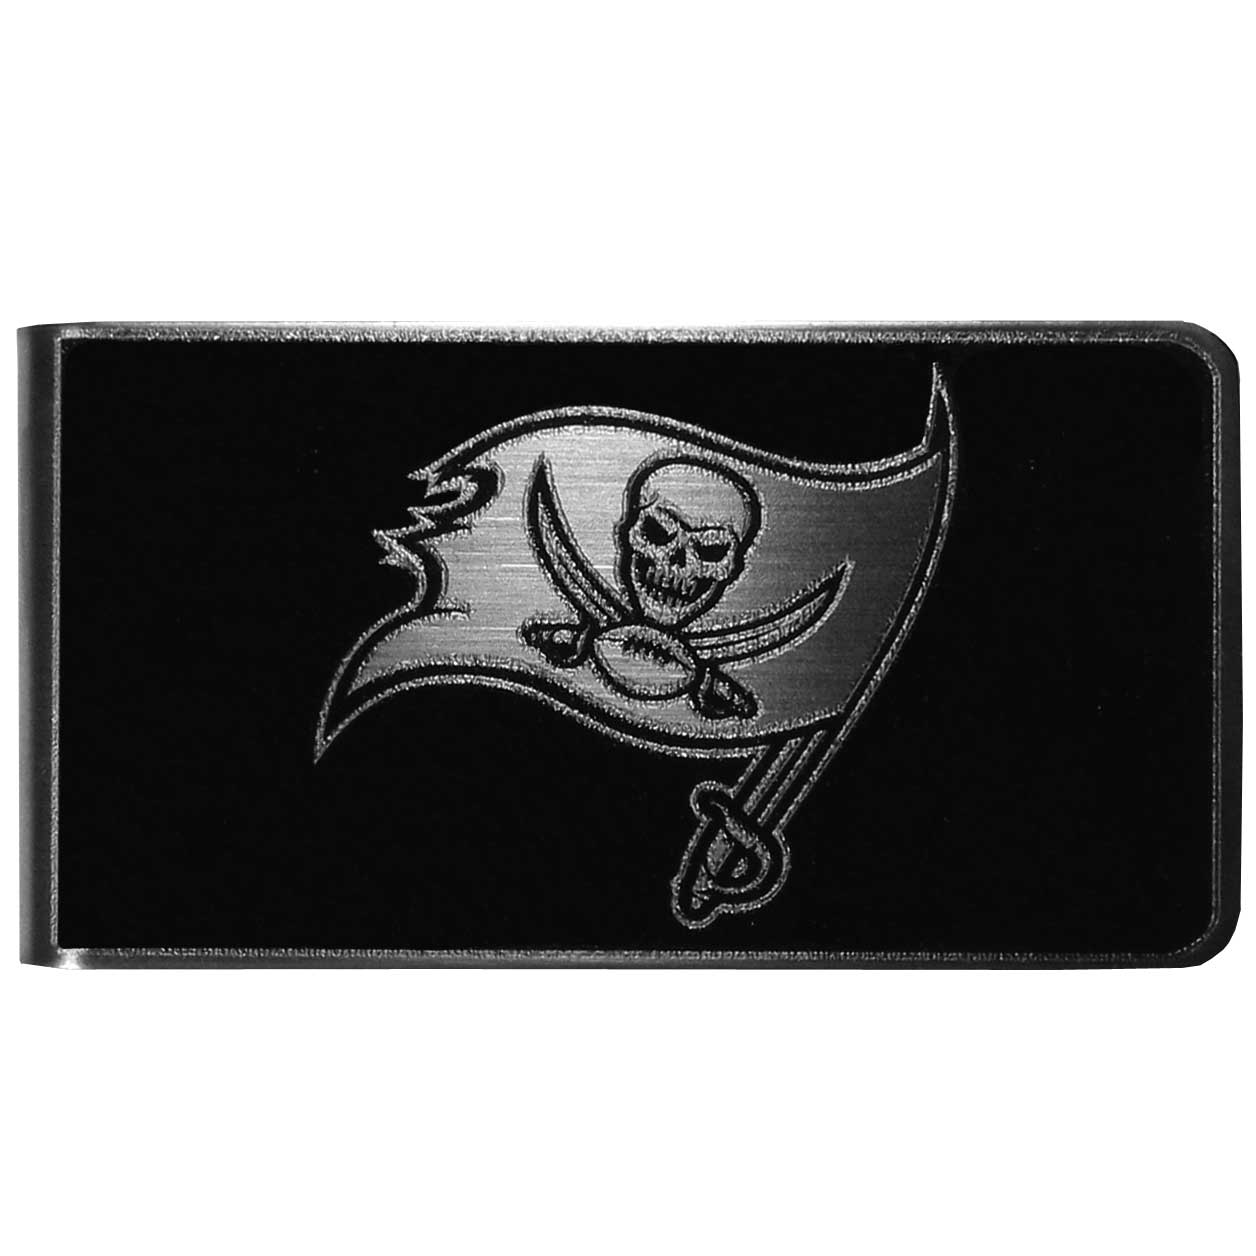 Tampa Bay Buccaneers Black and Steel Money Clip